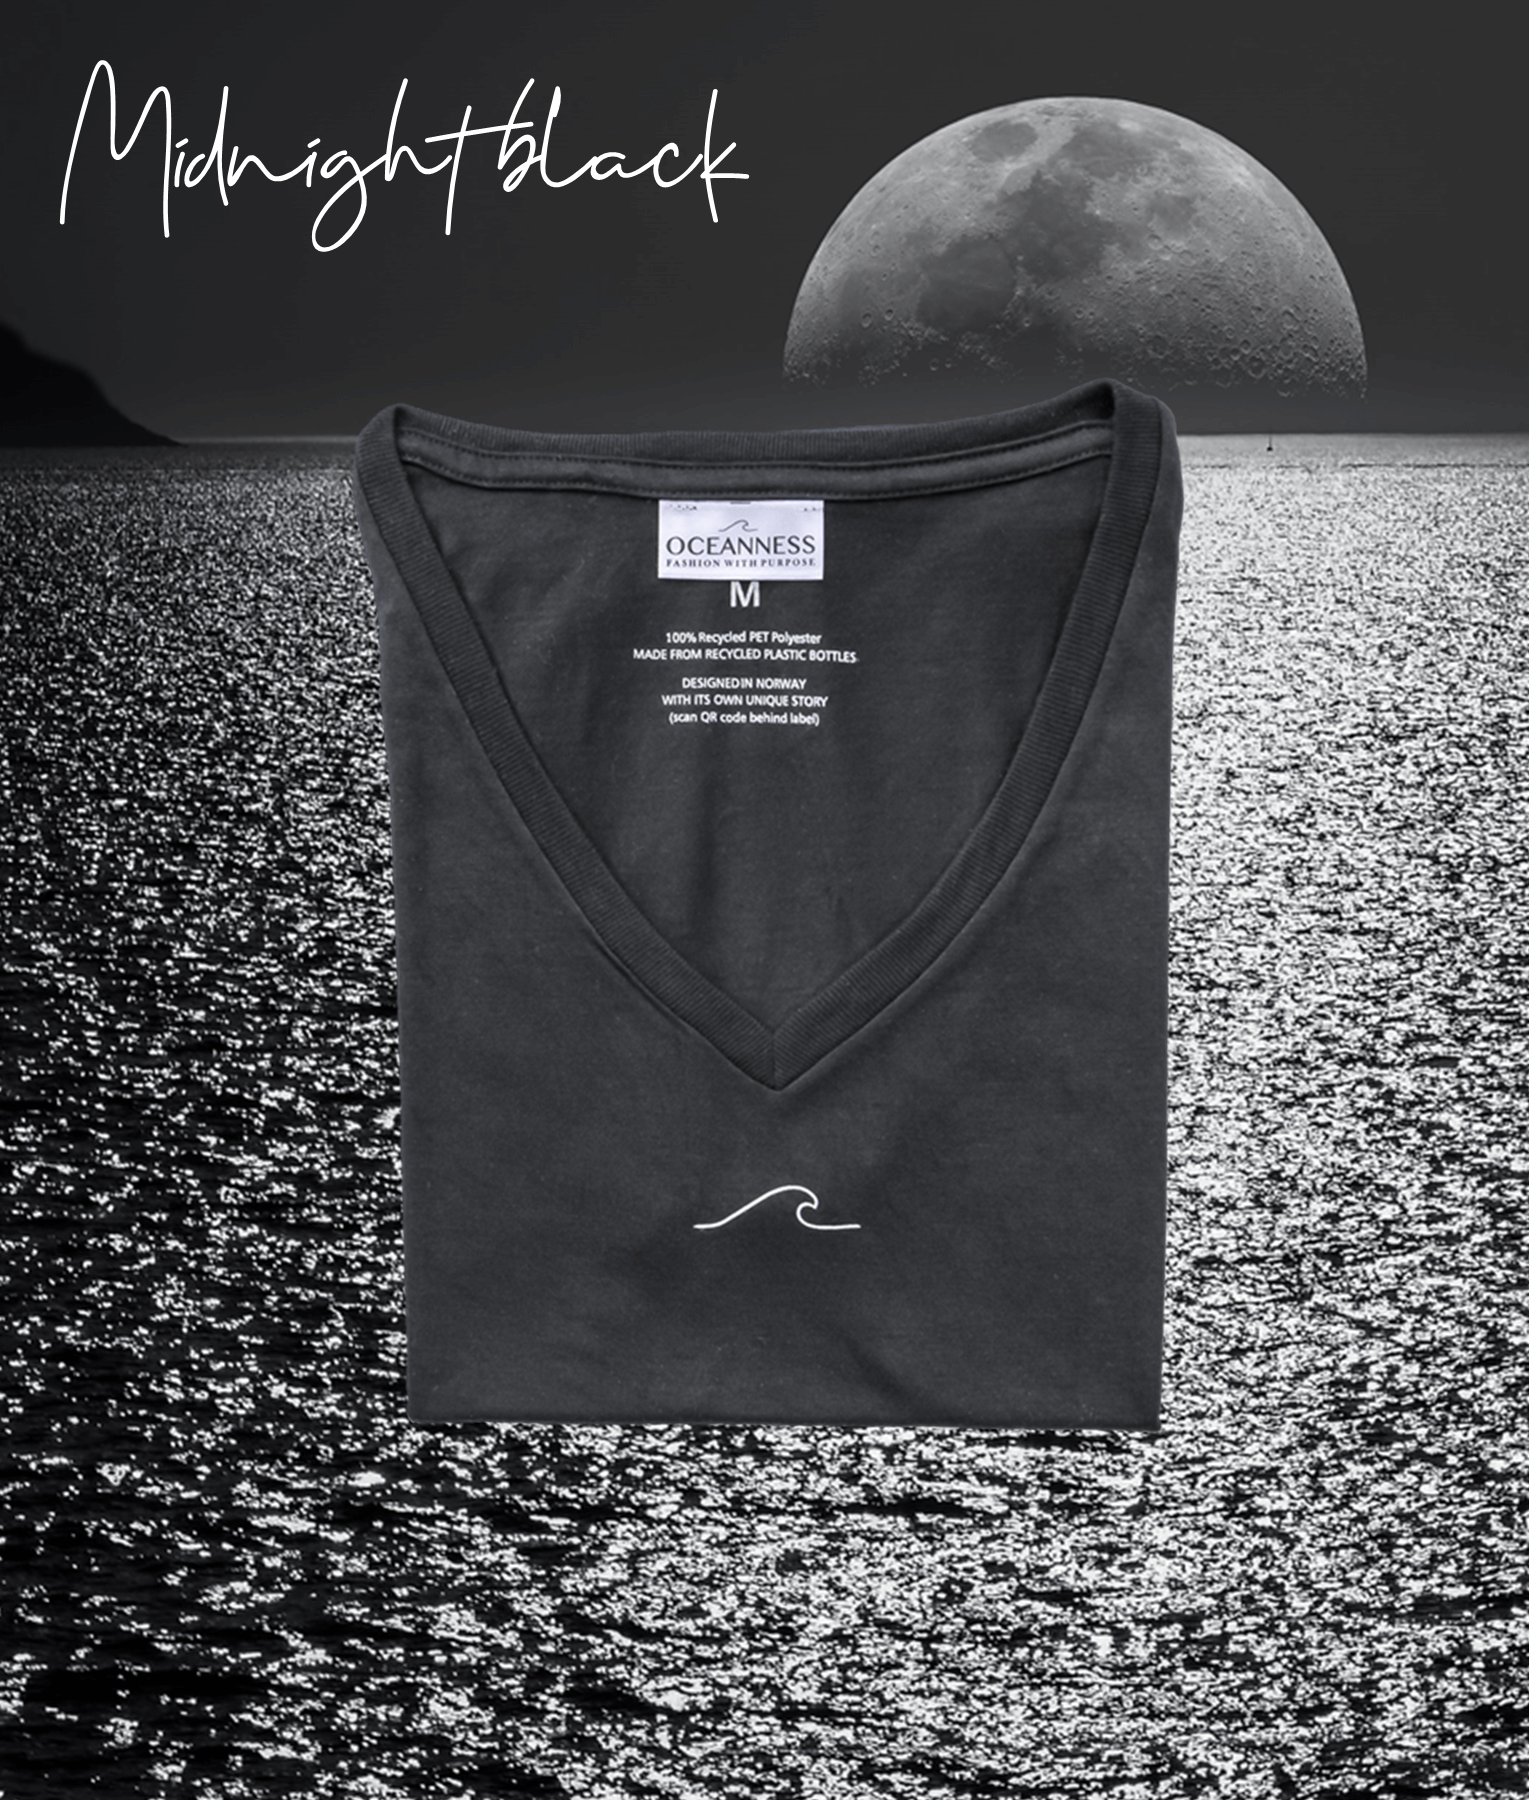 Midnight Black women's Oceanness t-shirt in front of moon and ocean by night